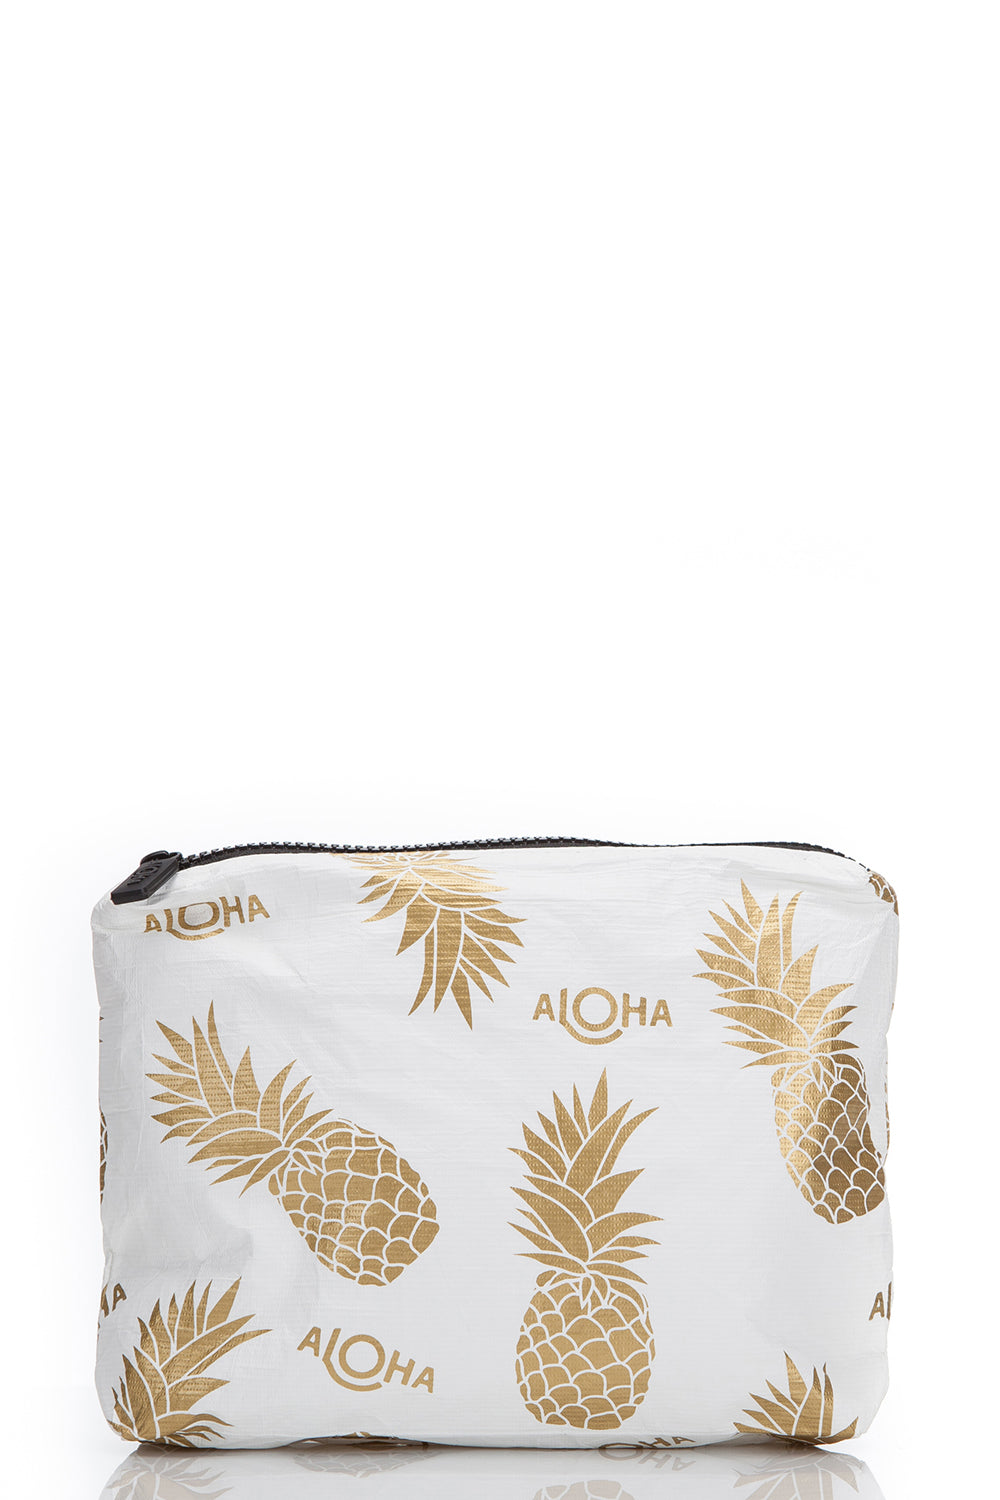 ALOHA Collection Small Pineapple Fields Pouch in White/Gold